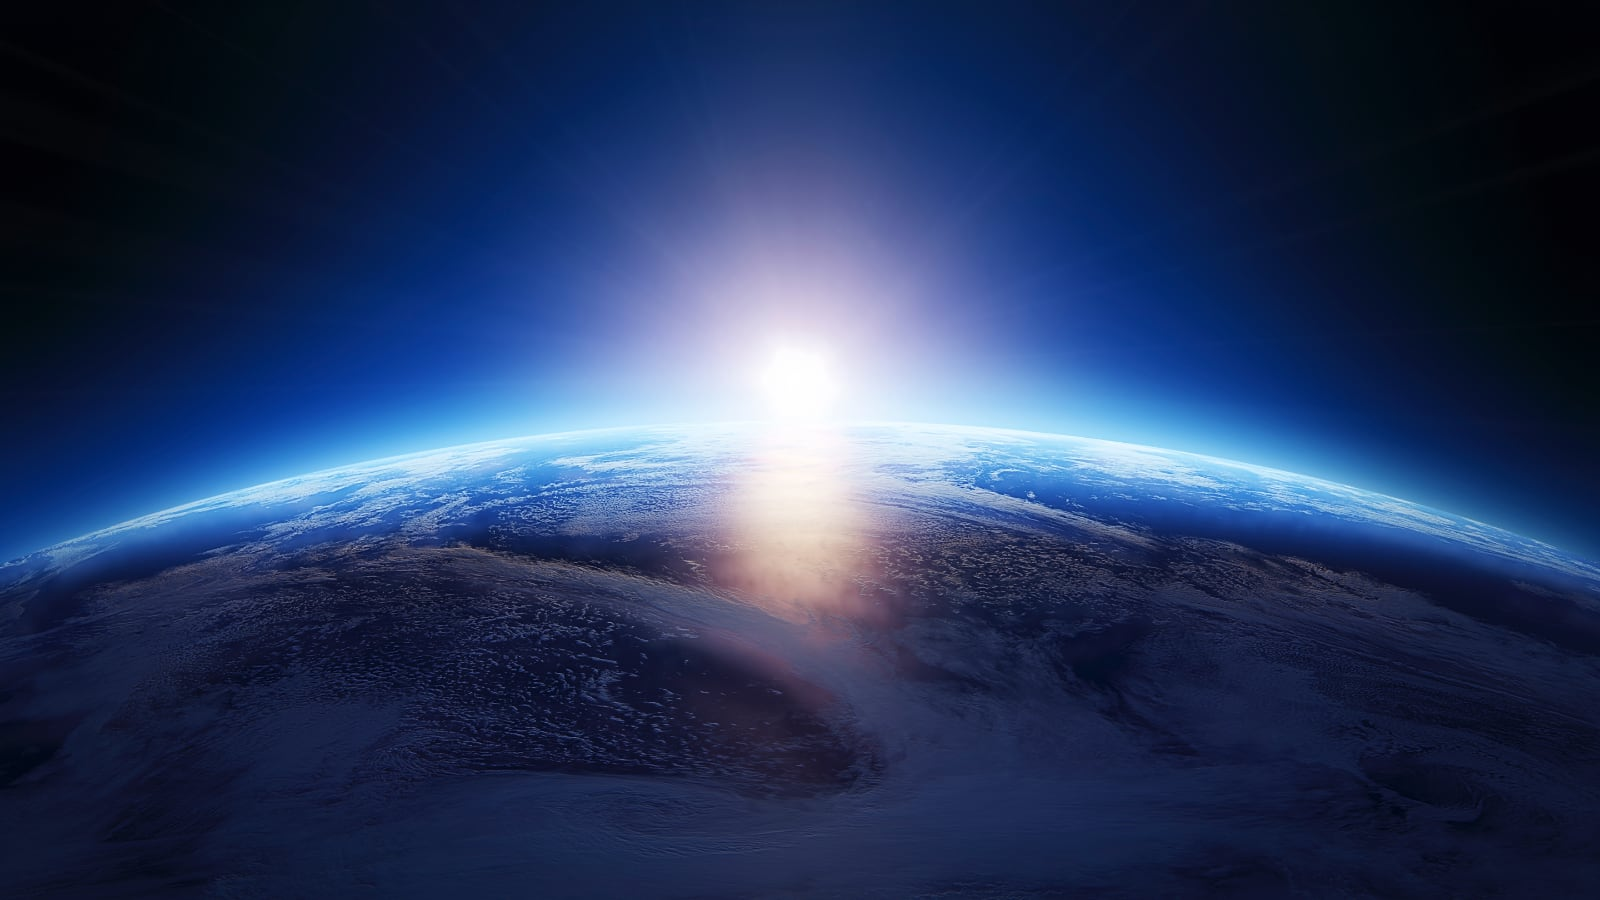 Photo of part Earth curvature from space, with the sun just coming into view behind the Earth